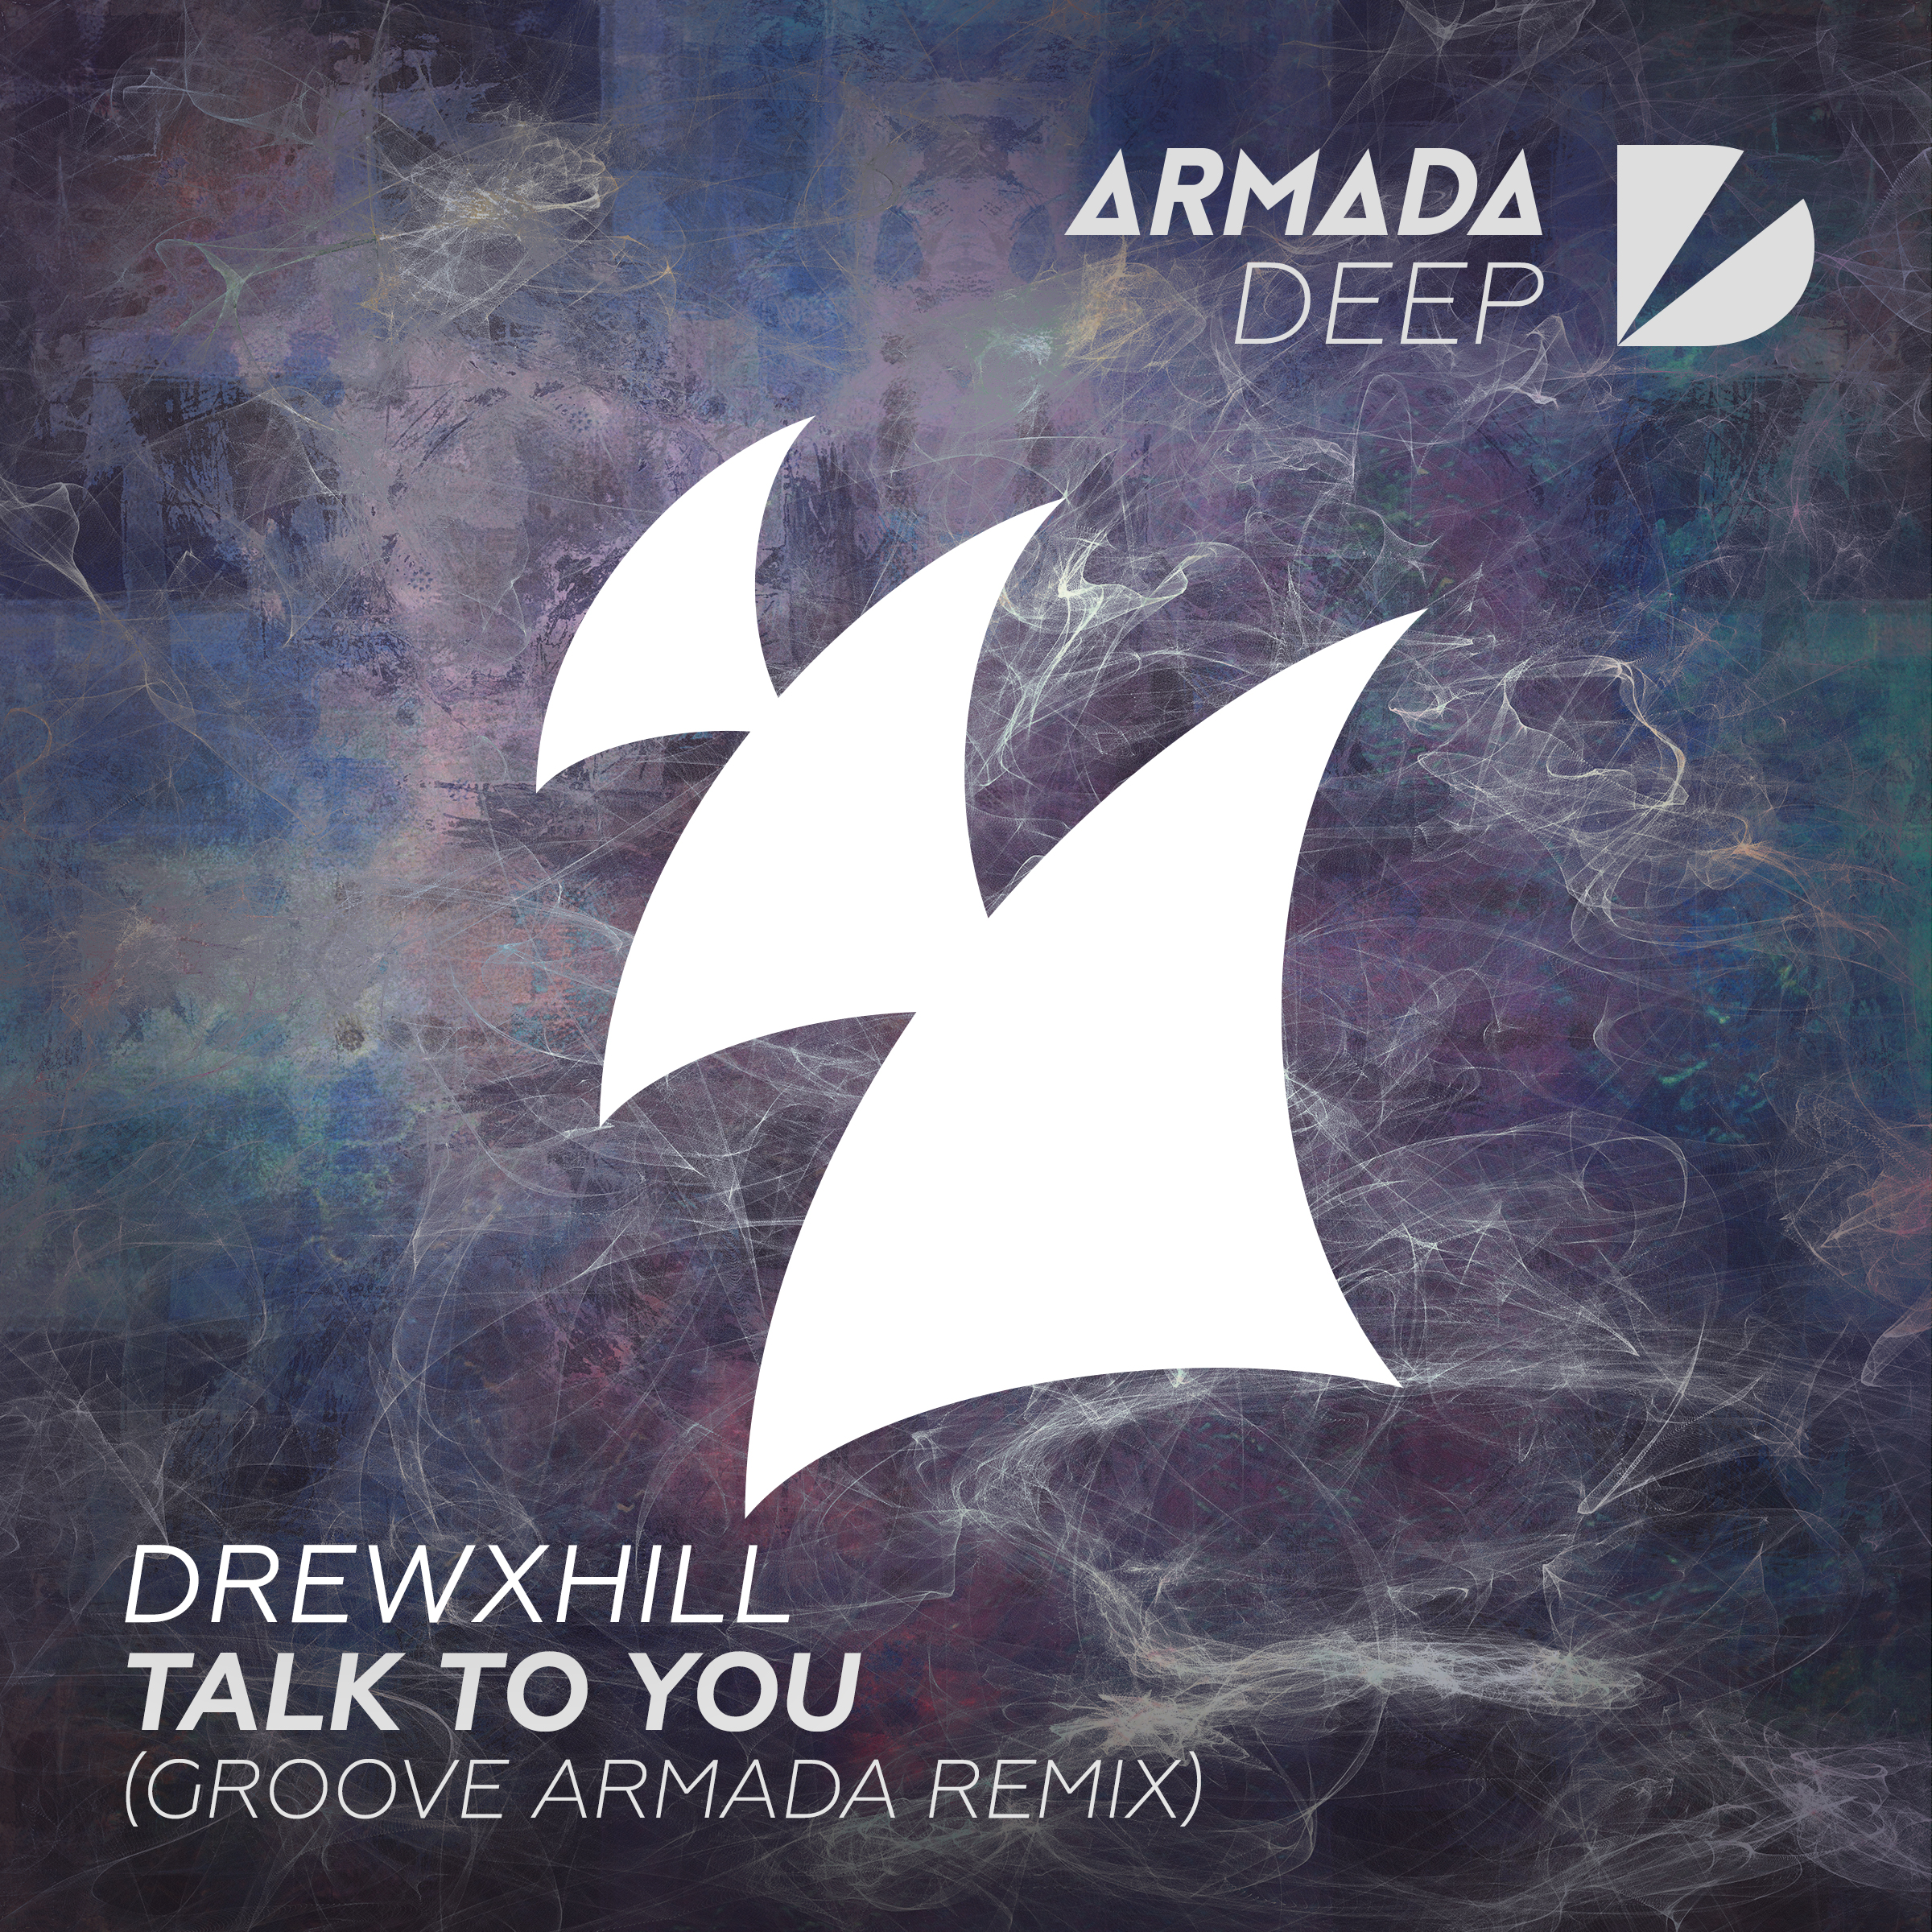 ardp-drew-hill-talk-to-you-groove-armada-remix.jpg